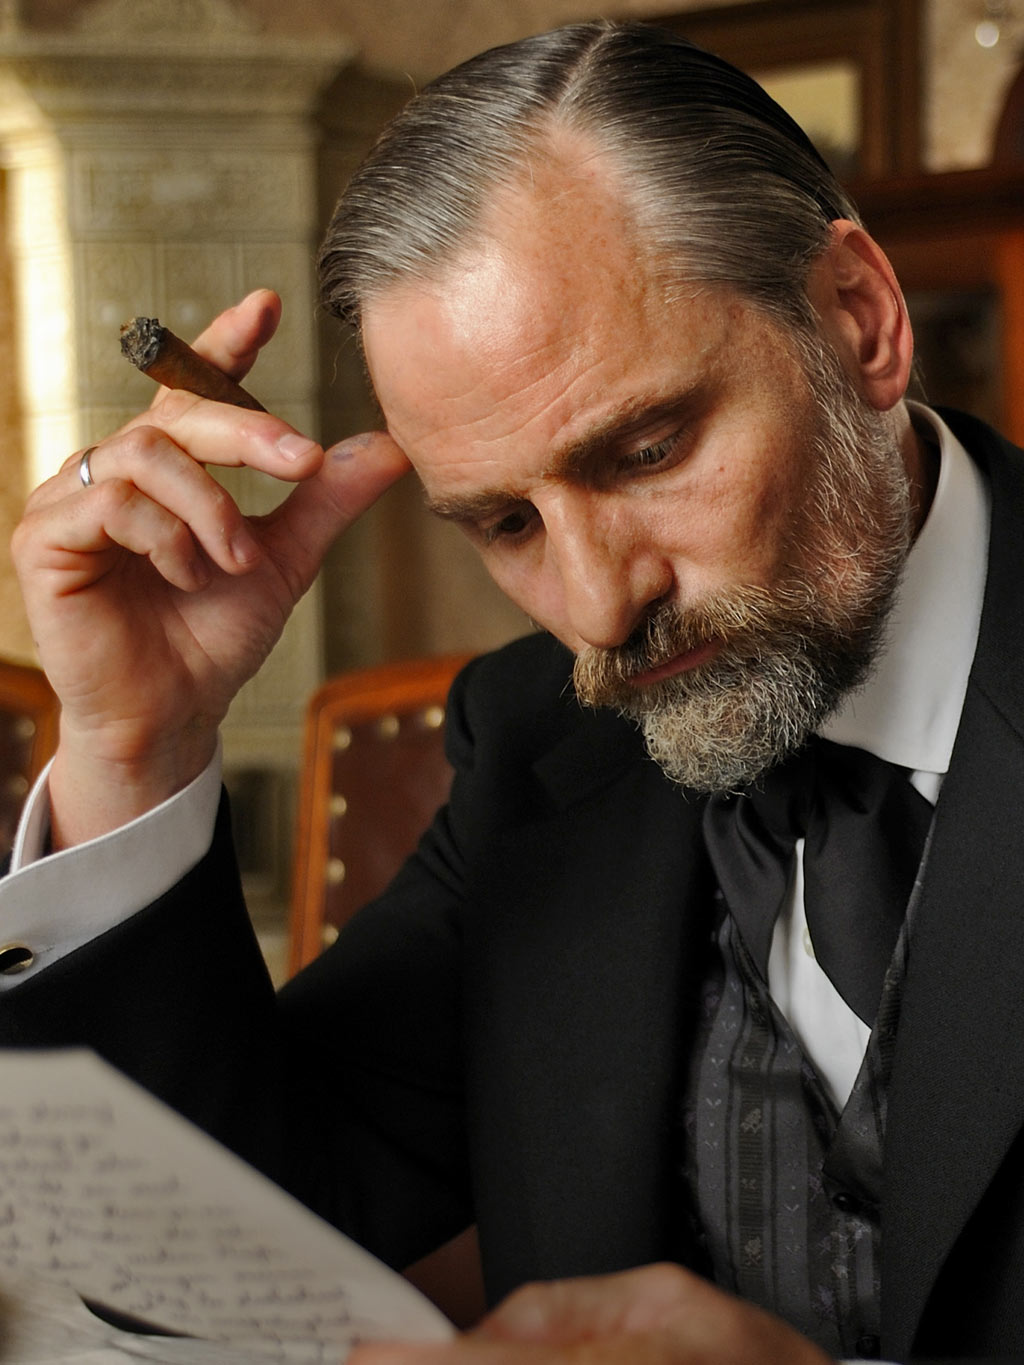 Viggo Mortensen as Sigmund Freud in A Dangerous Method